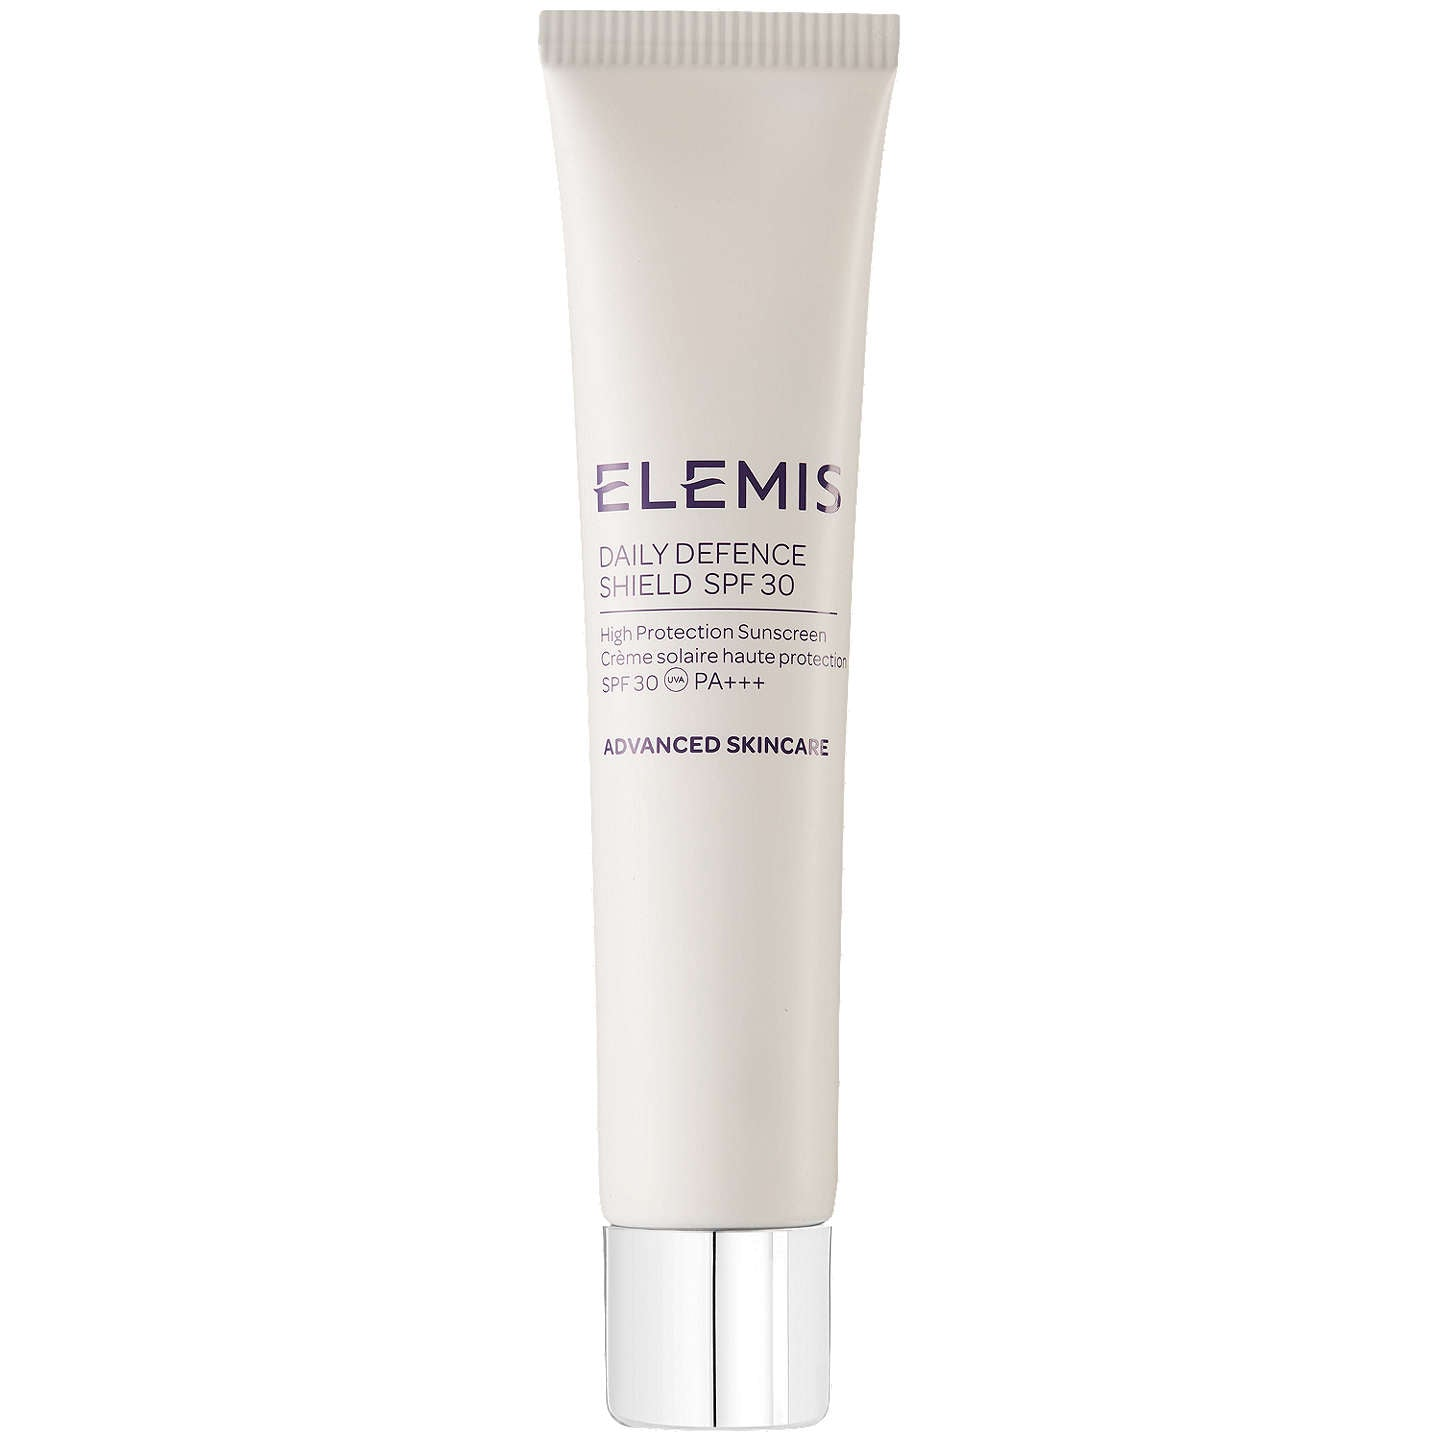 Elemis Daily Defence Shield SPF 30